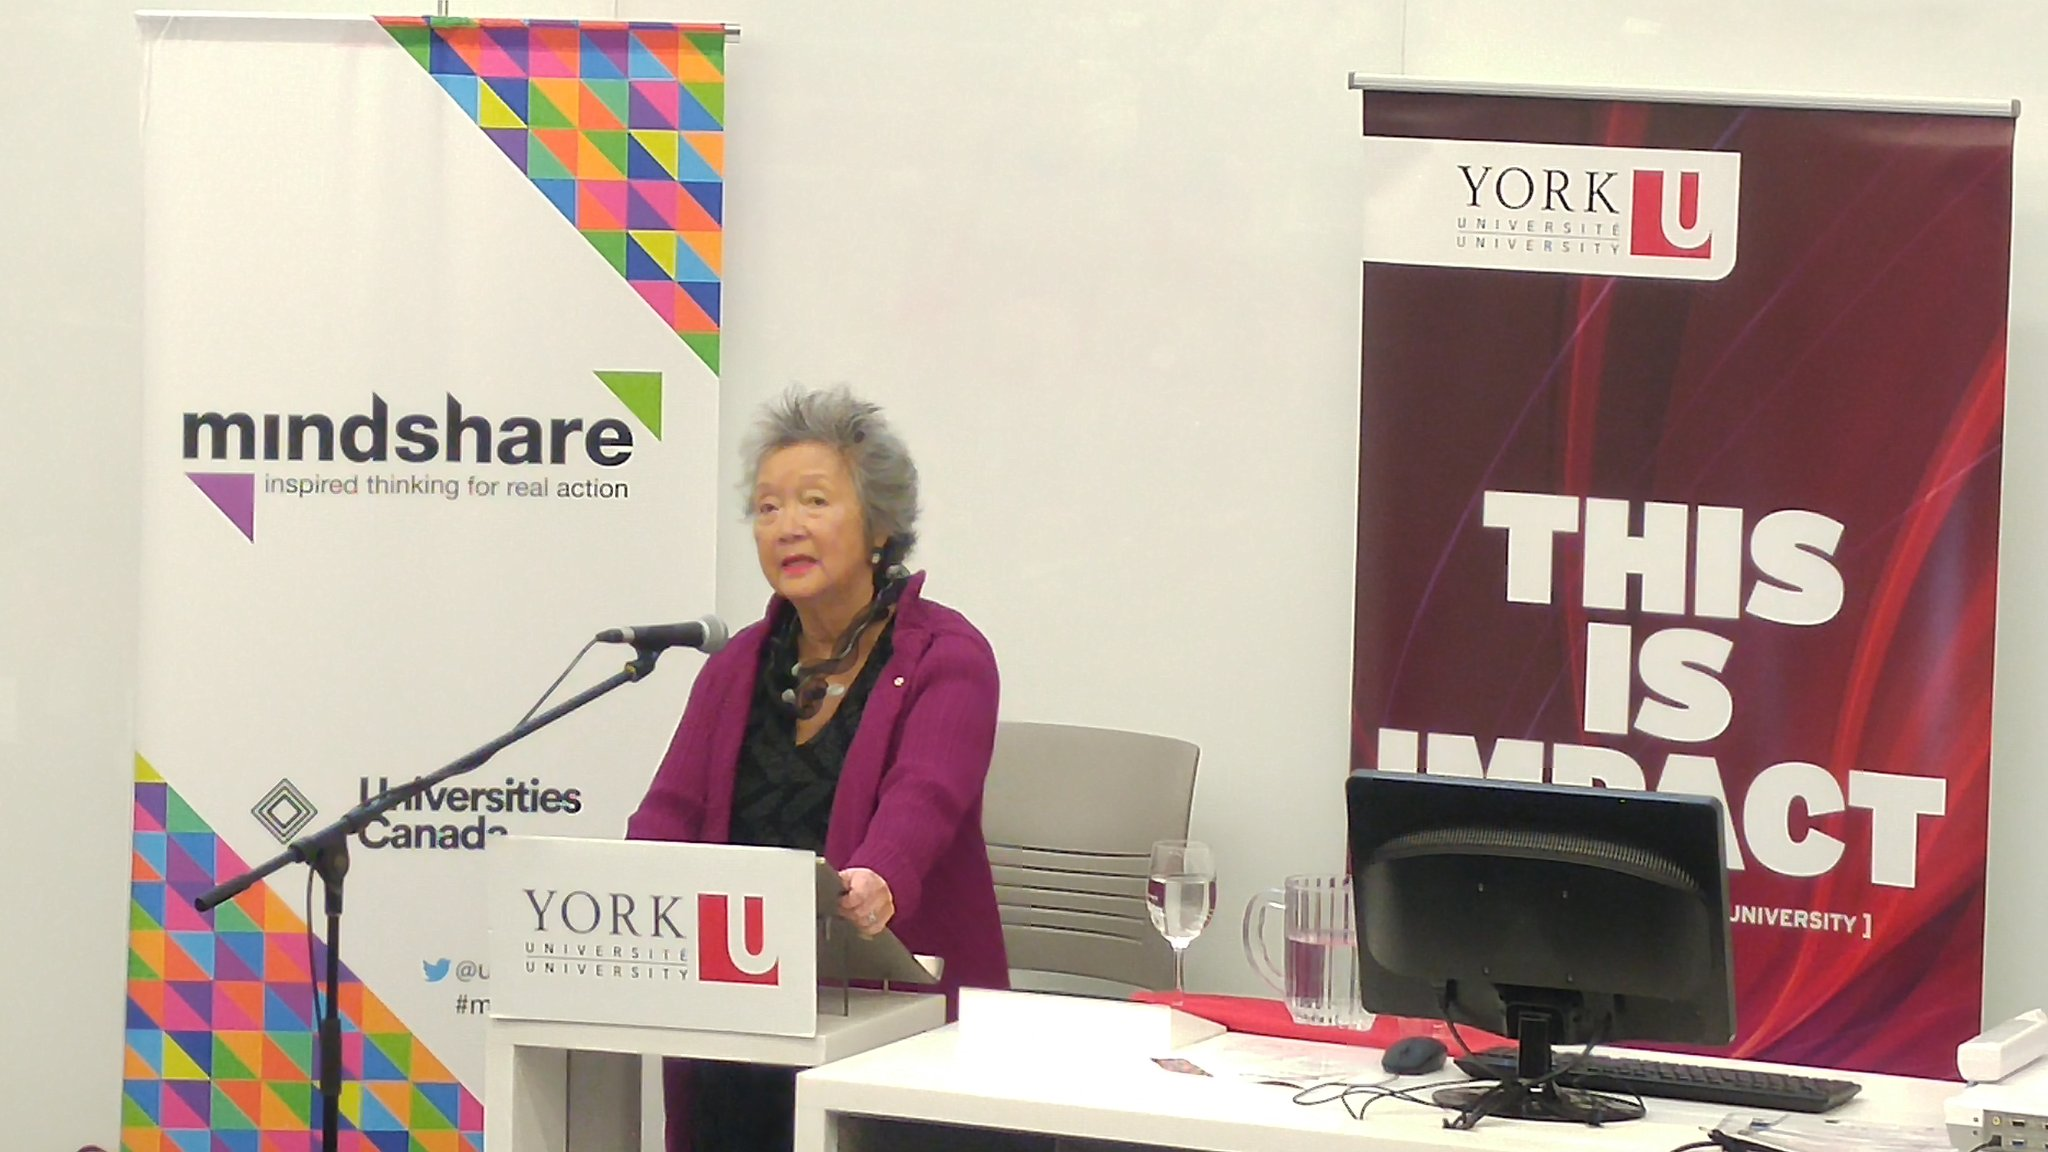 Refugees arrive with a deep sense of loss, and are determined to build so as to not lose again. - Rt. Hon. Adrienne Clarkson #mindshare2016 https://t.co/4cCvRerr08